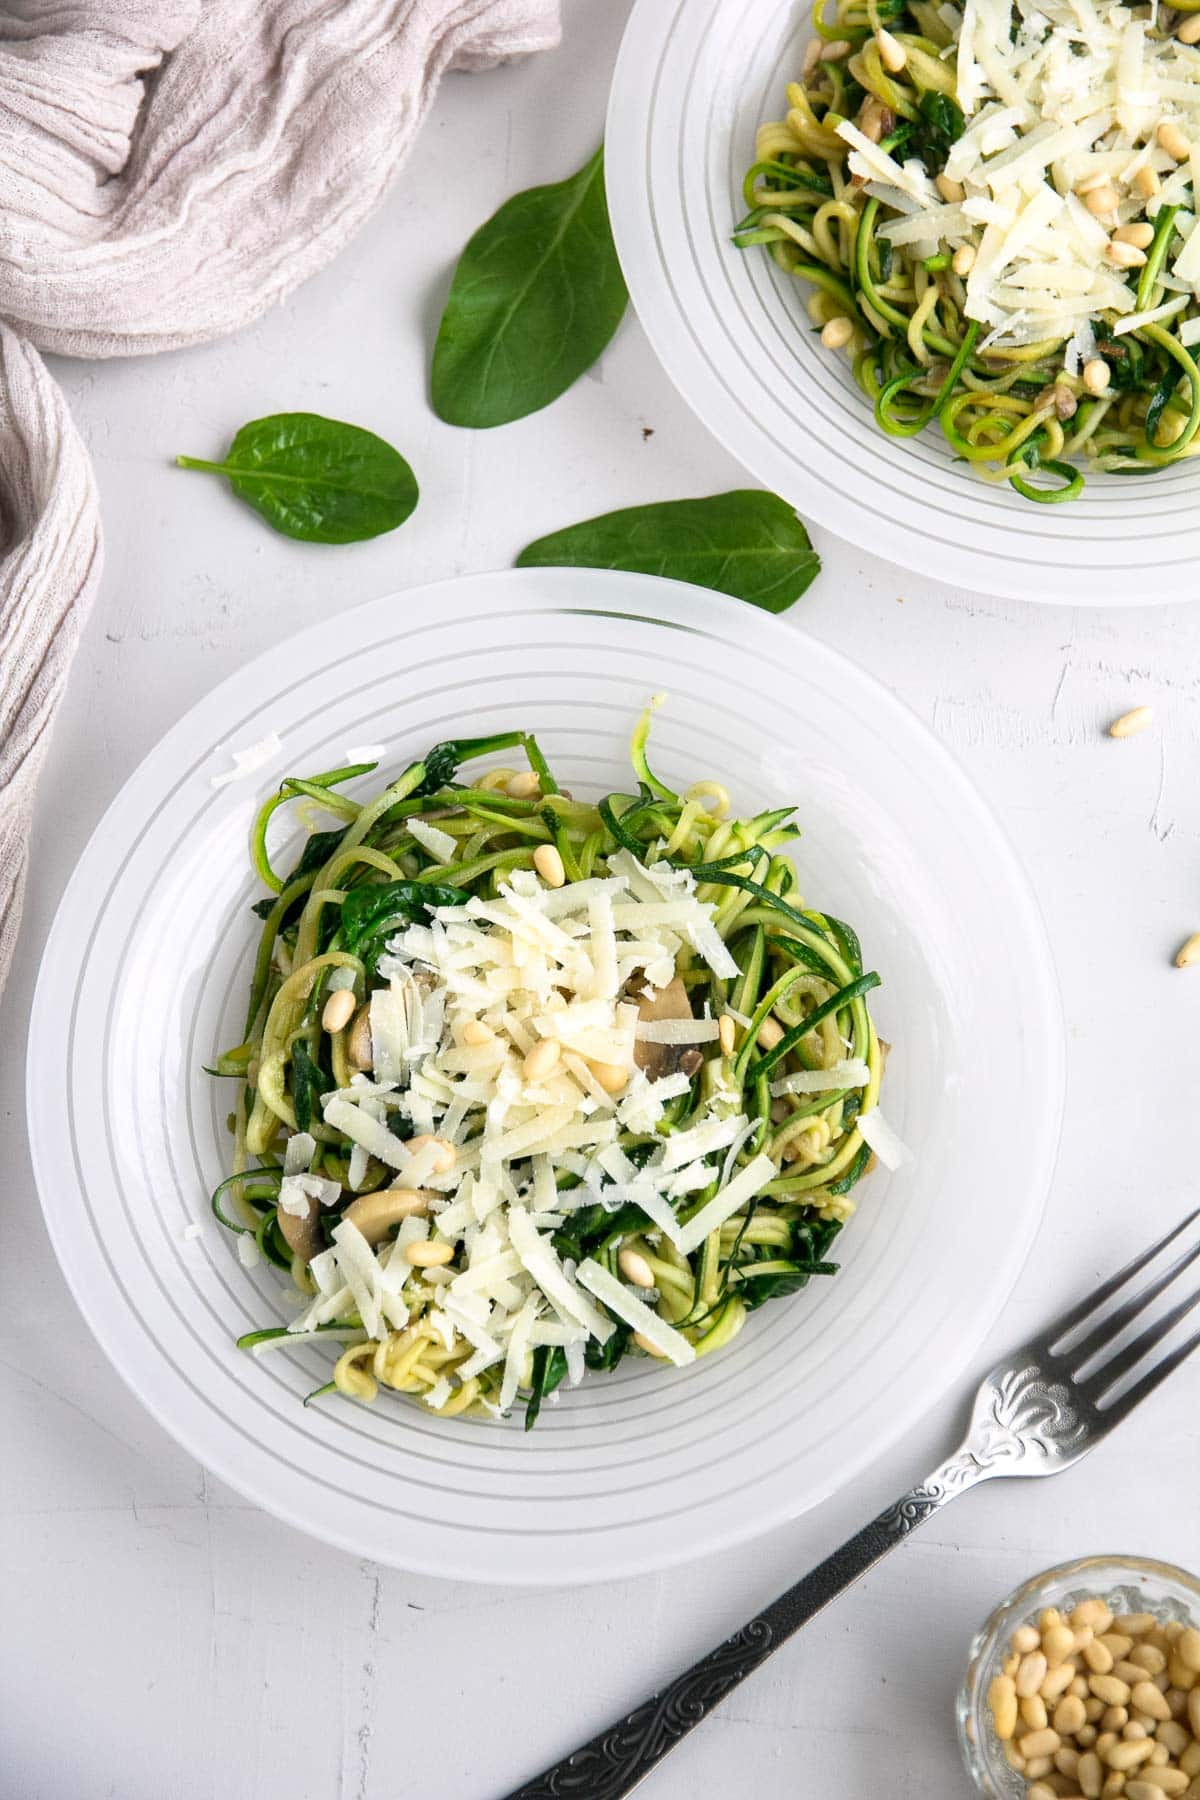 Two plates of a spinach, mushroom, parmesan zoodles recipe.